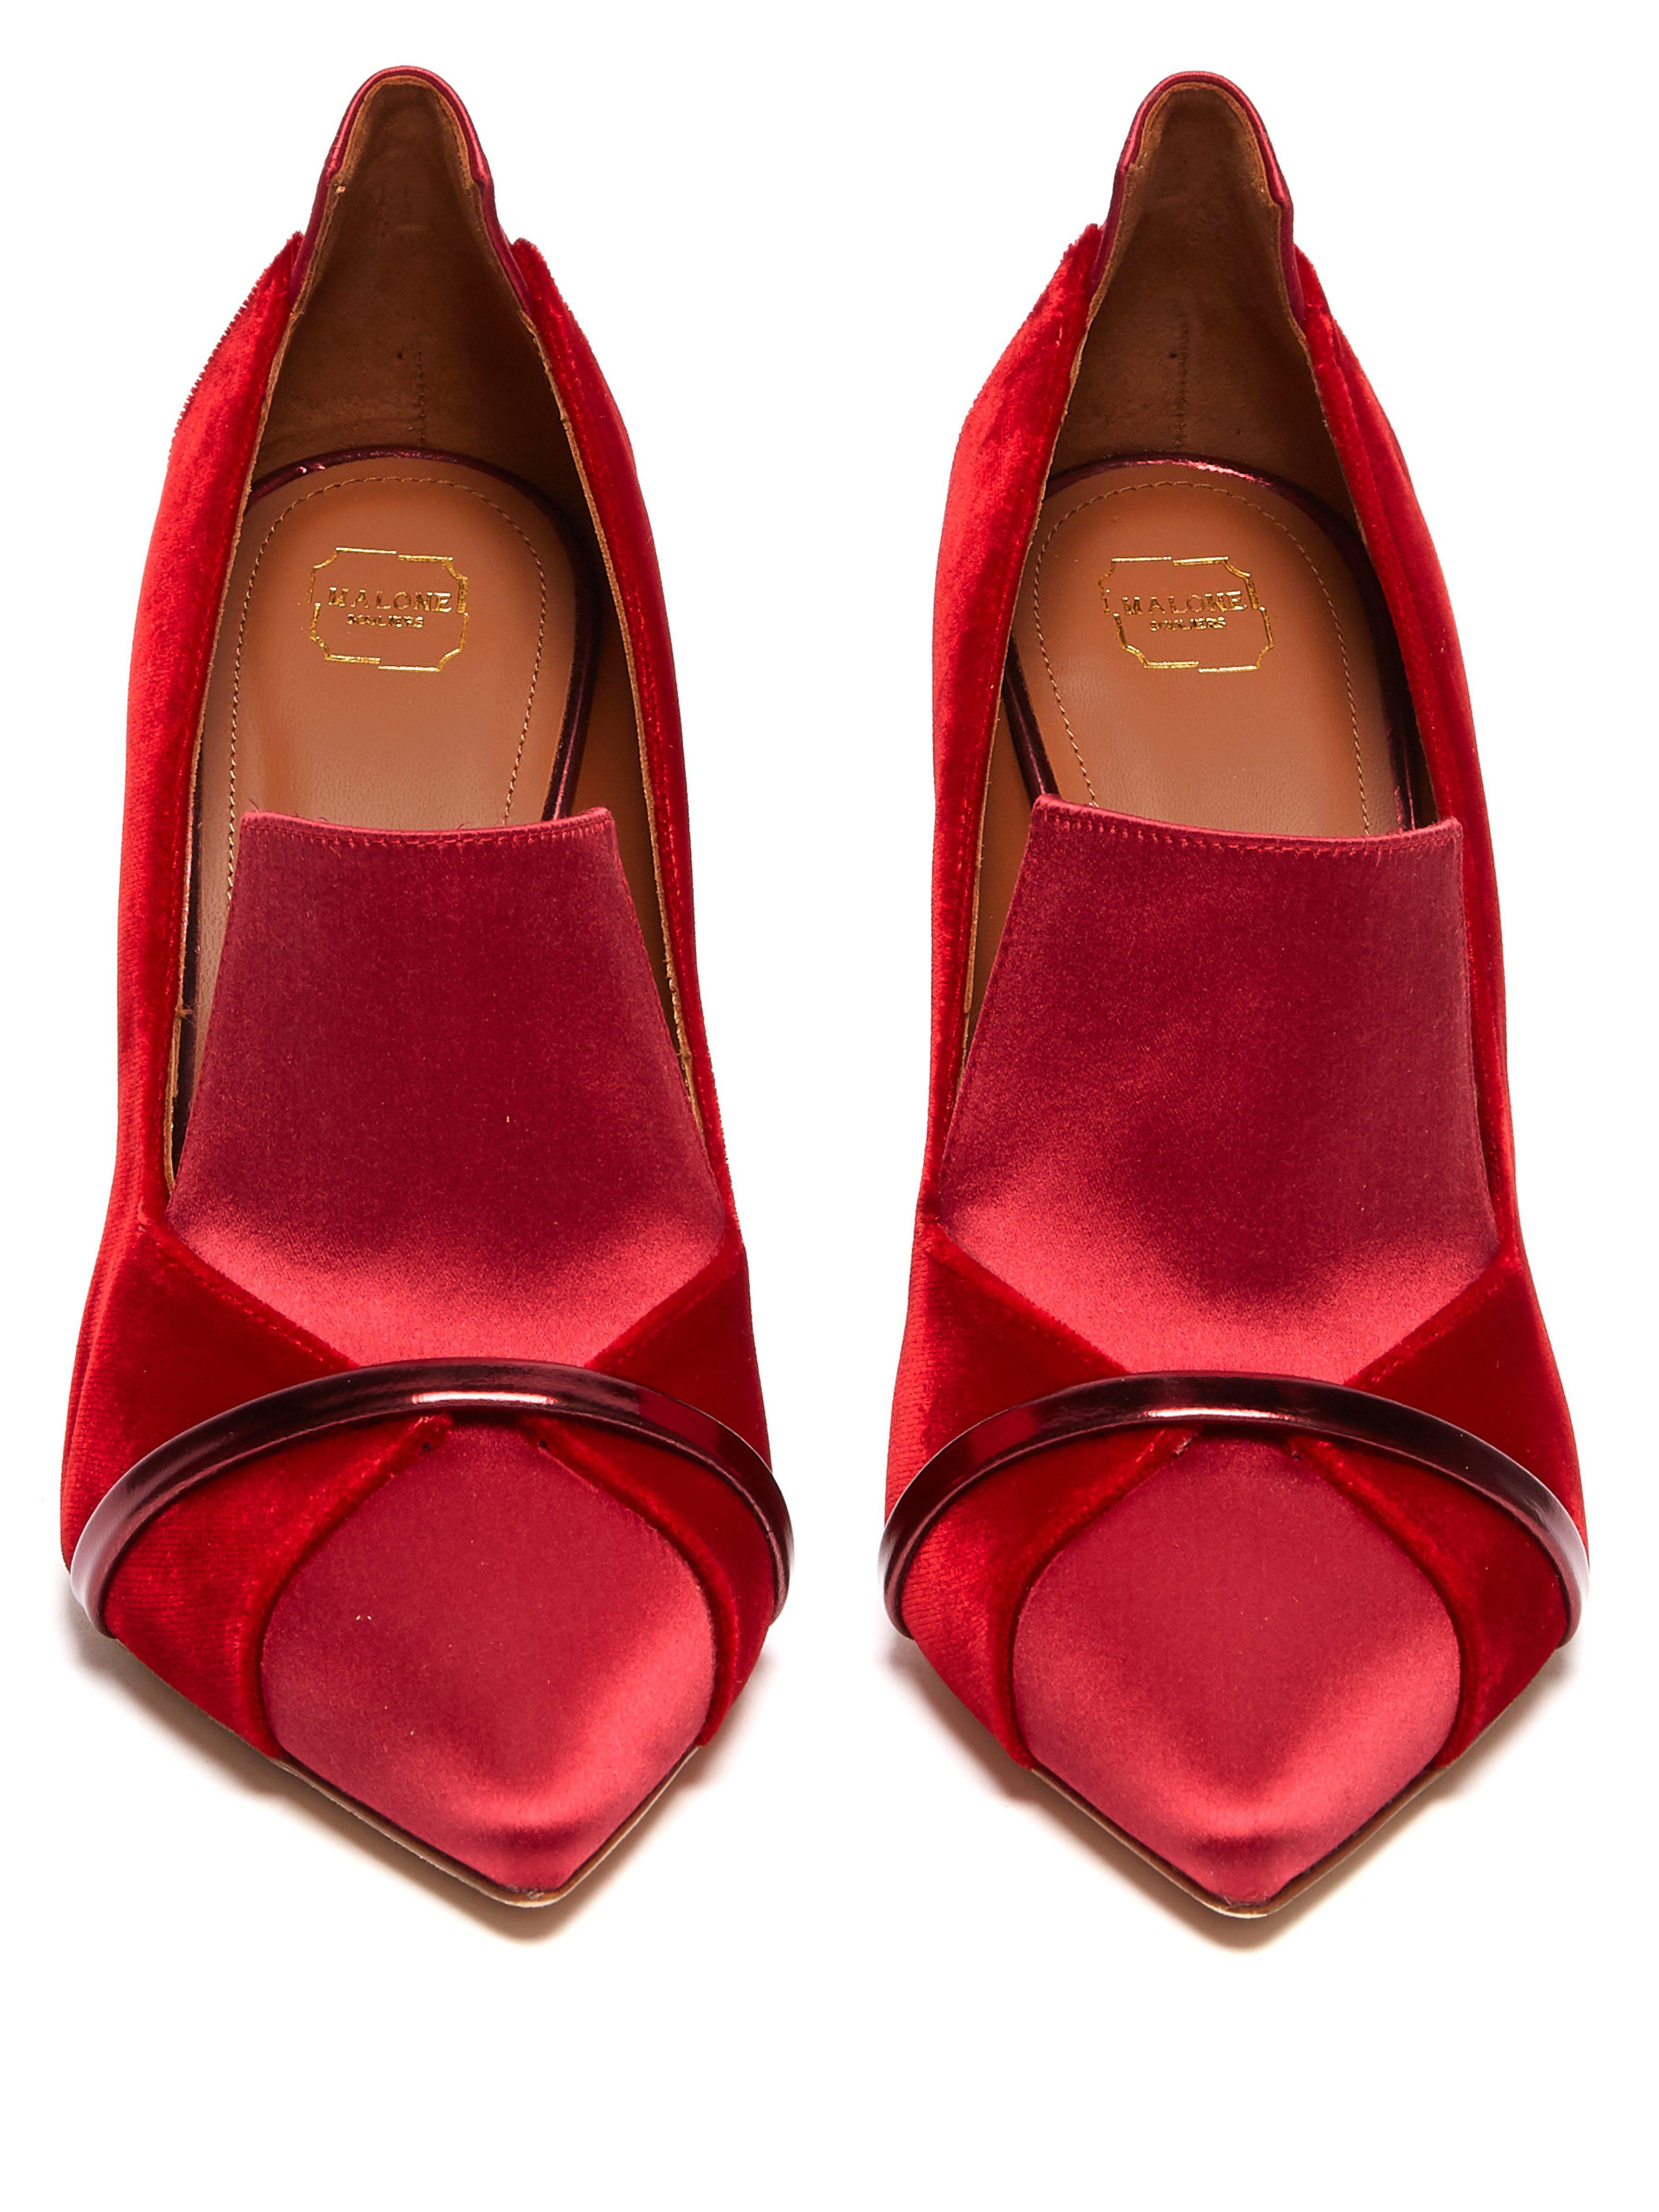 5690c02f04f Malone Souliers Storm Velvet And Satin Pumps in Red - Lyst